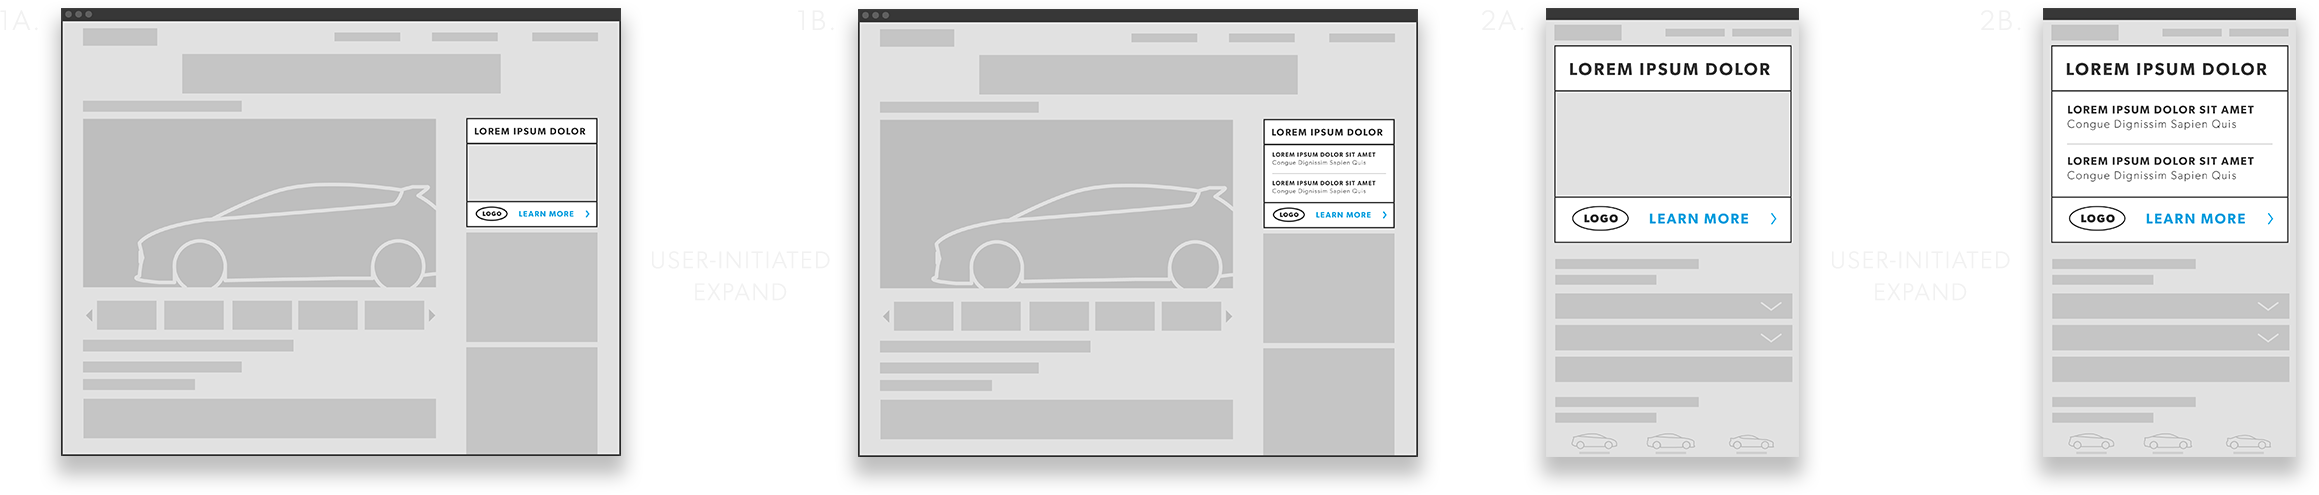 Dealer Locator Desktop Wireframe Image